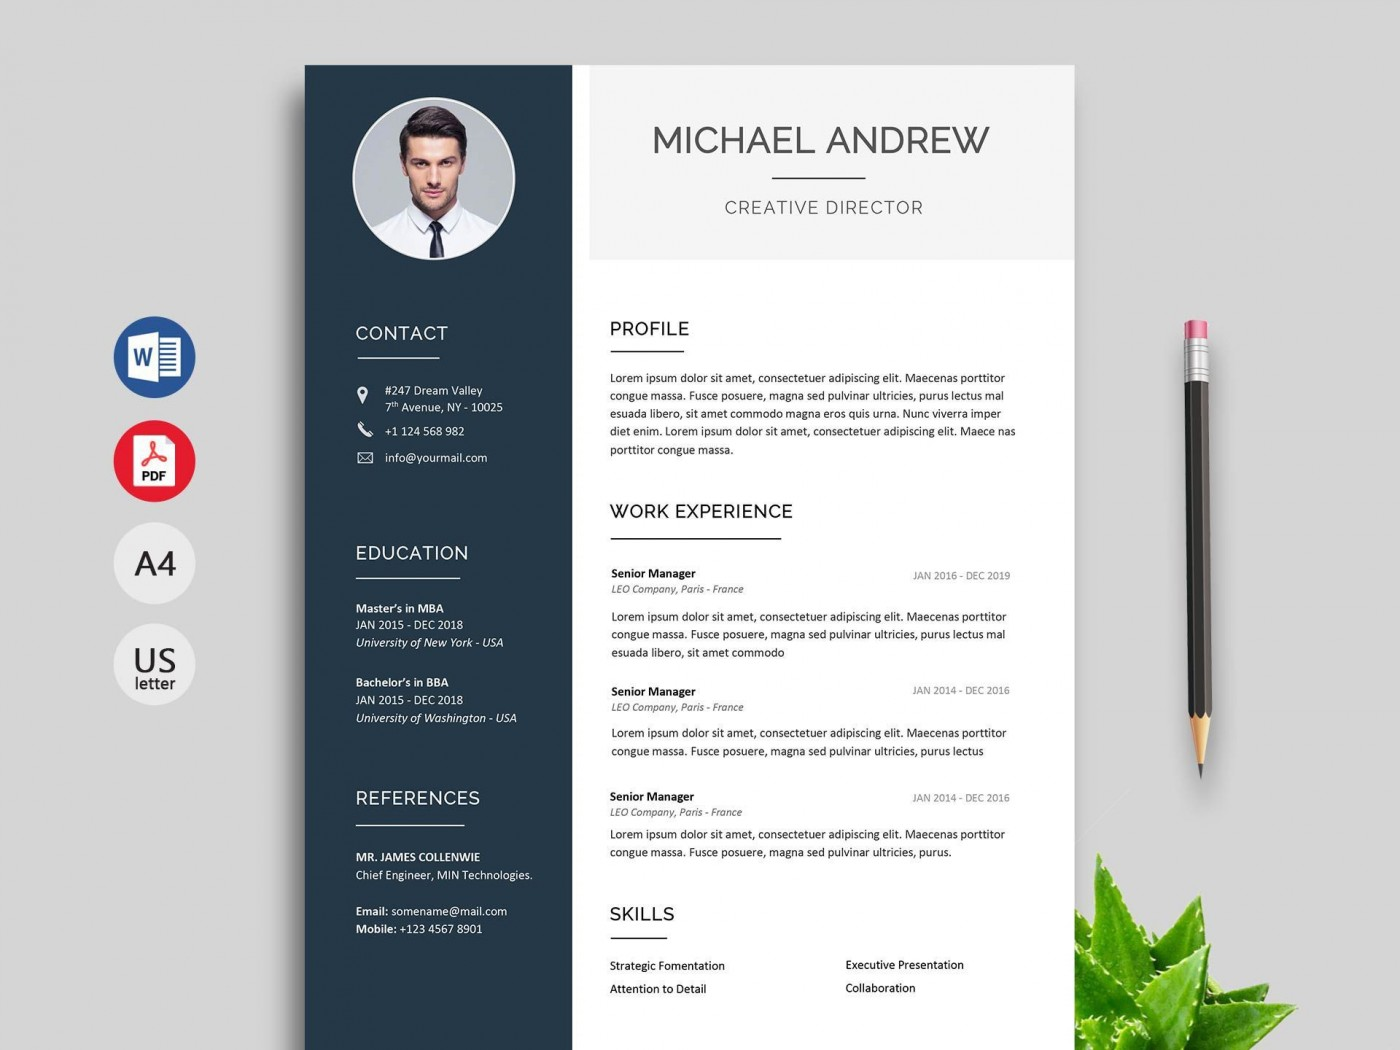 010 Awful Resume Sample Free Download Doc Photo  Resume.doc For Fresher1400